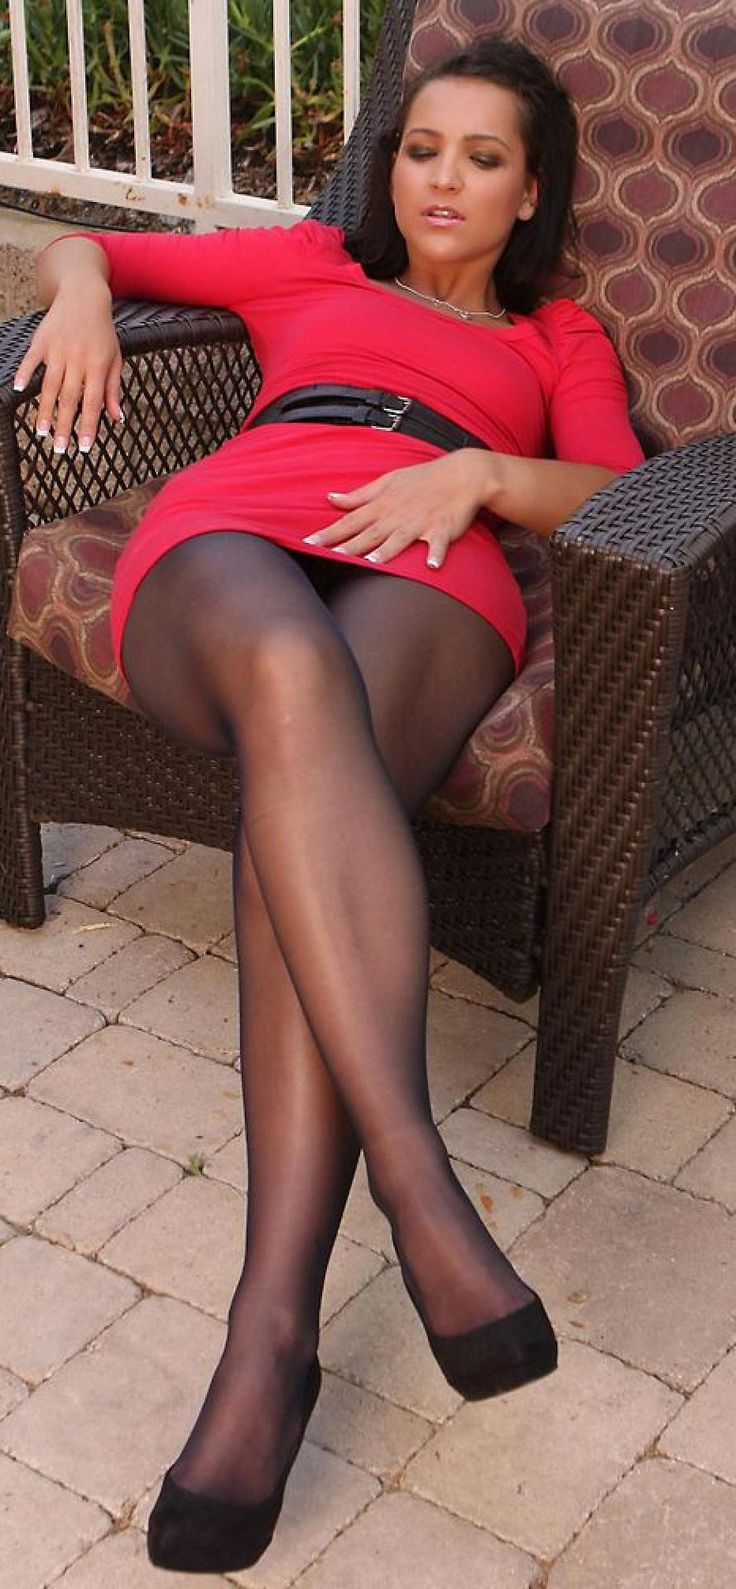 Legs Skirt Pantyhose This Conversation 102